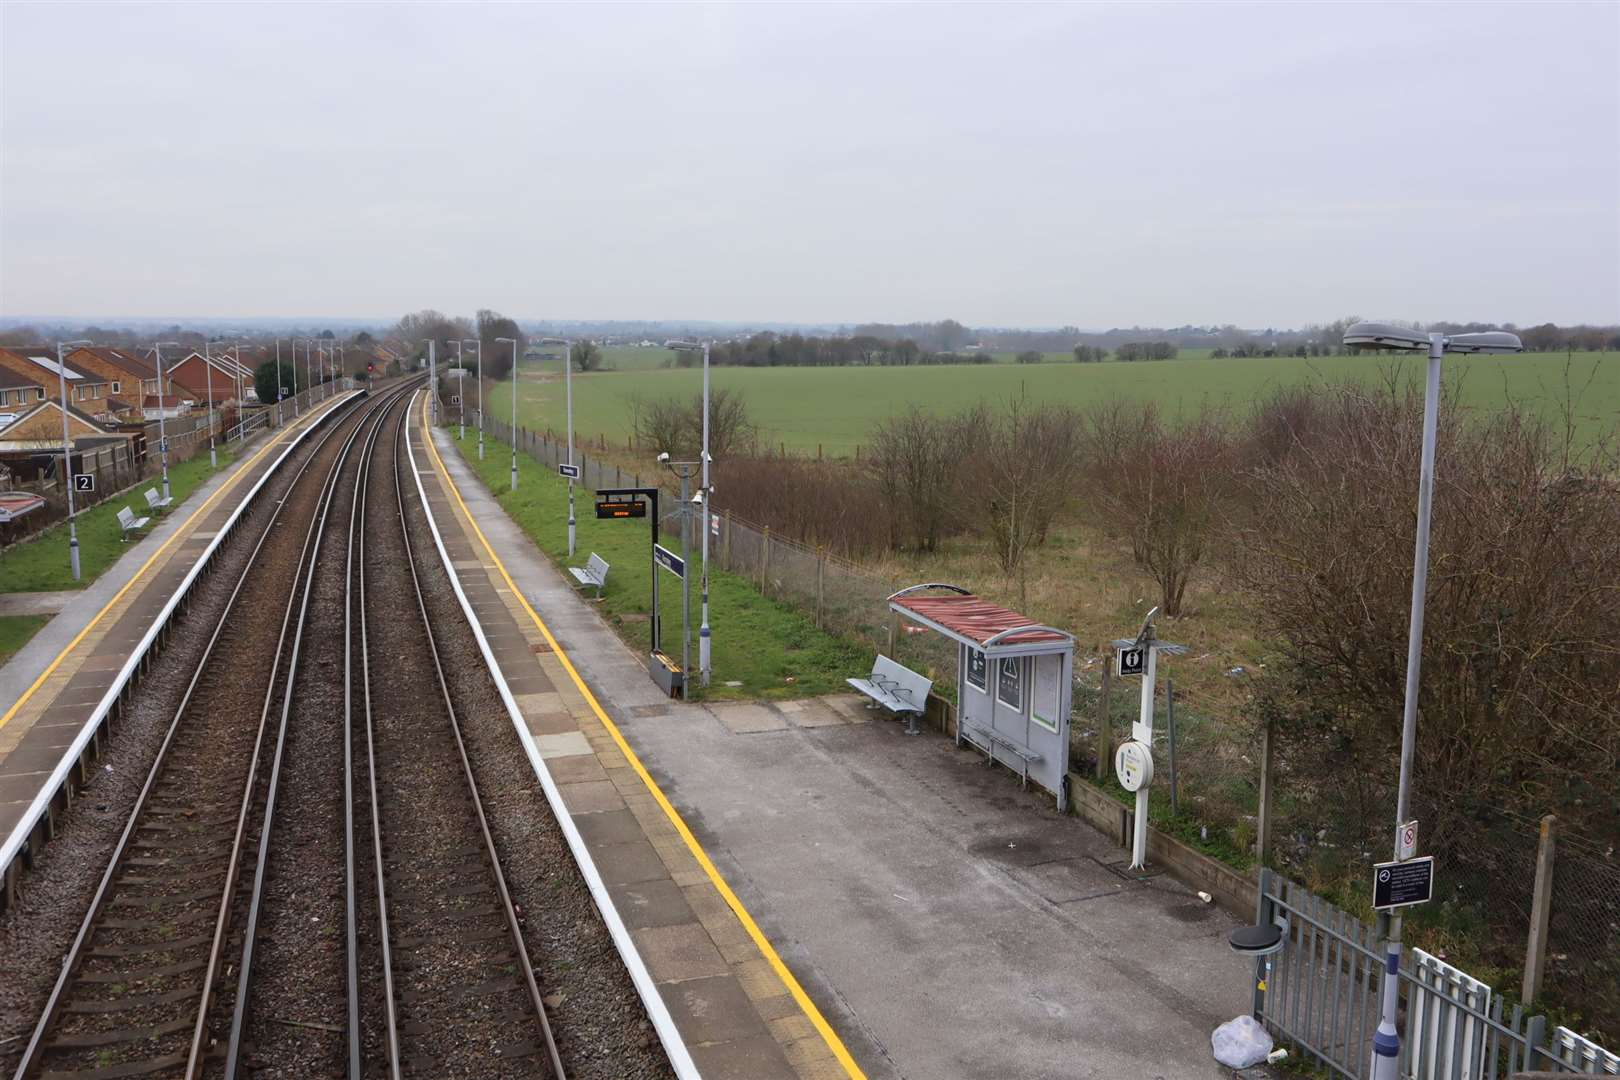 Railway lines at Kemsley Halt showing farmland to the right